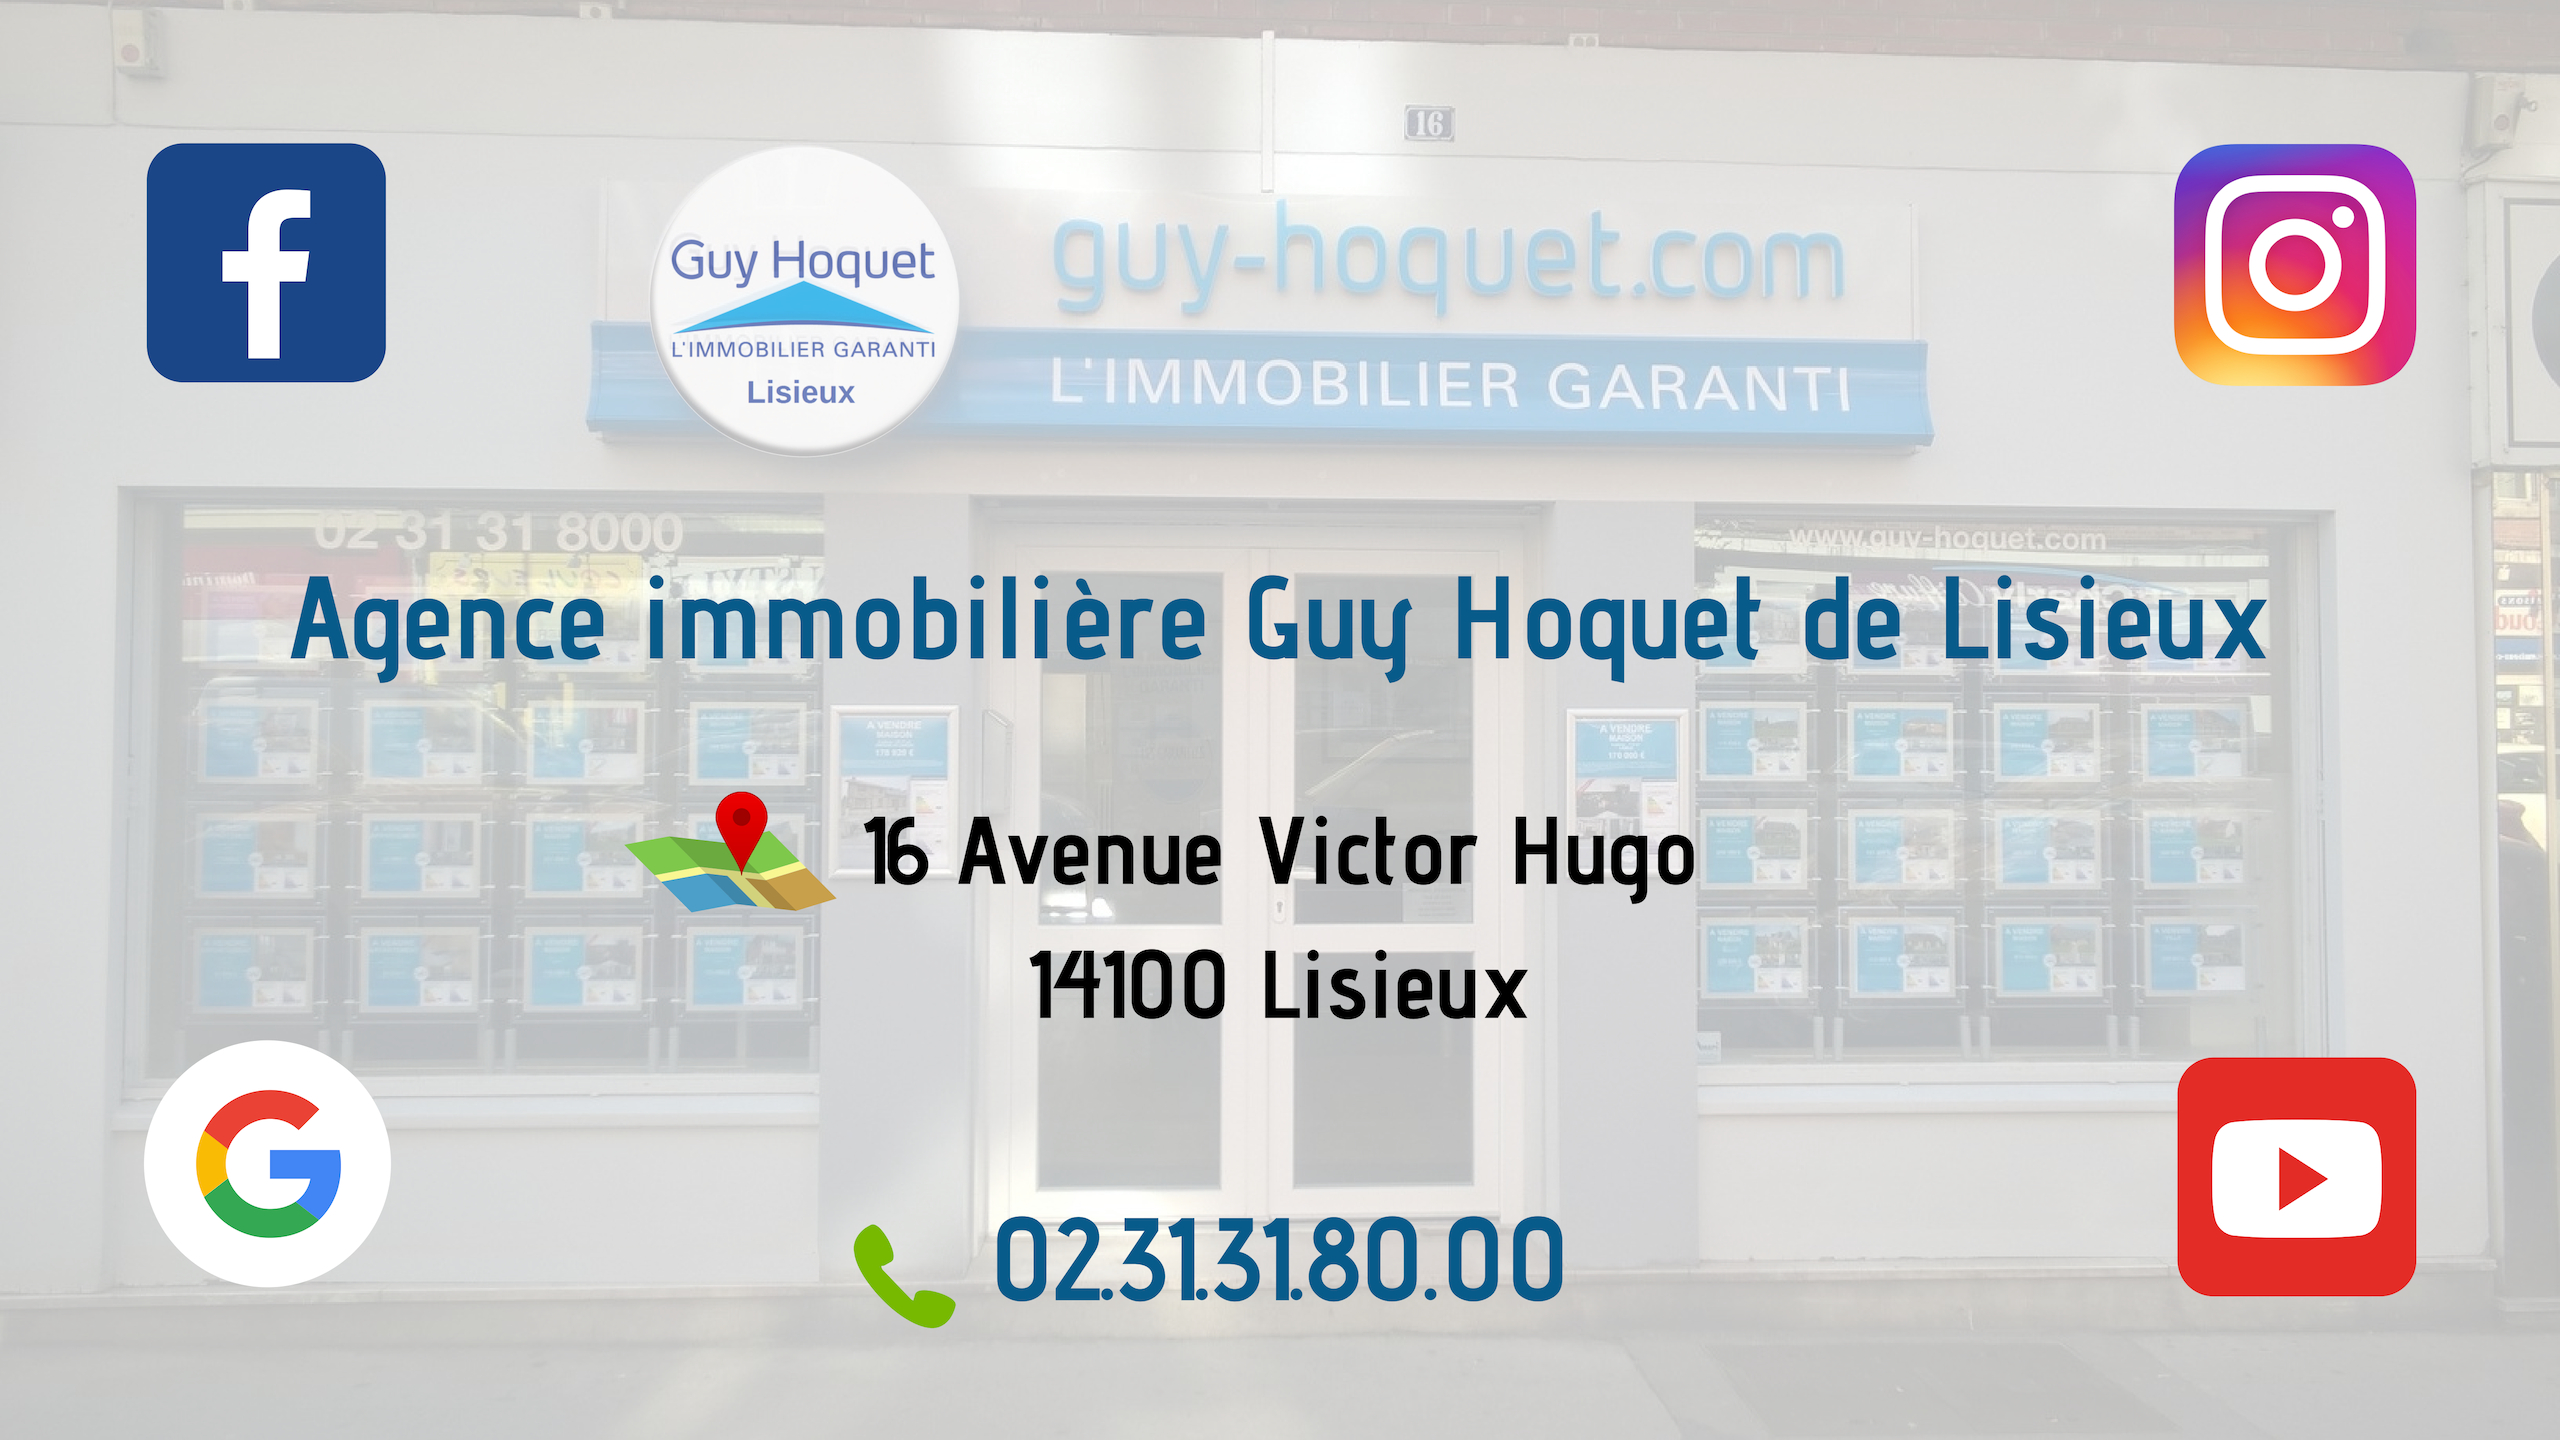 Agence immobilière Guy Hoquet Lisieux - Contact